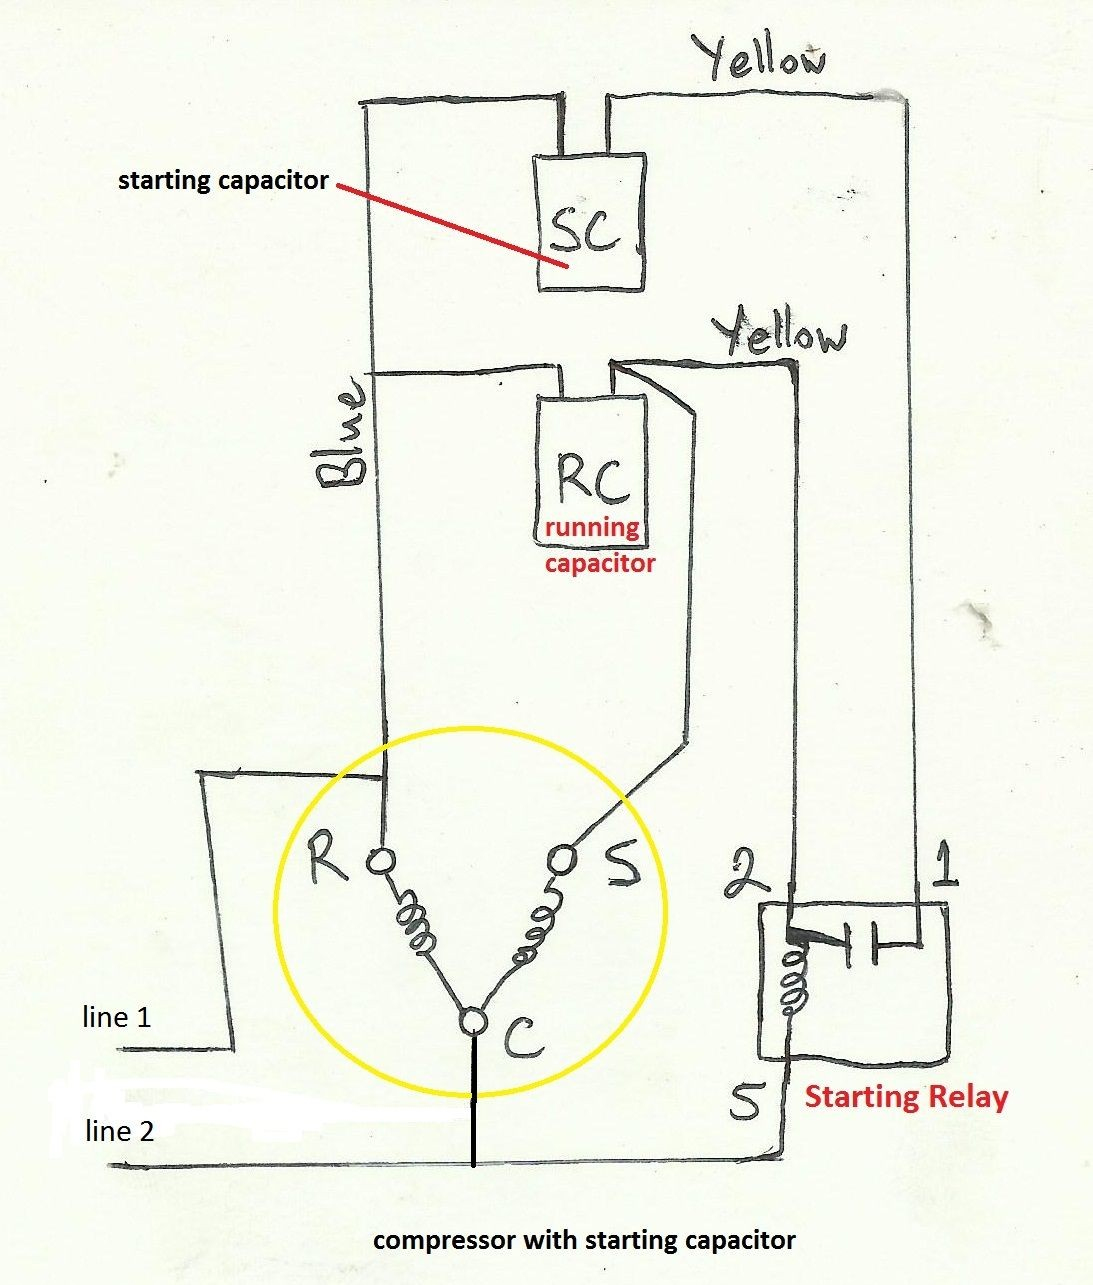 Air Compressor Wiring Schematic Detailed Schematics Diagram 240v 3 Phase Image 12 Volt